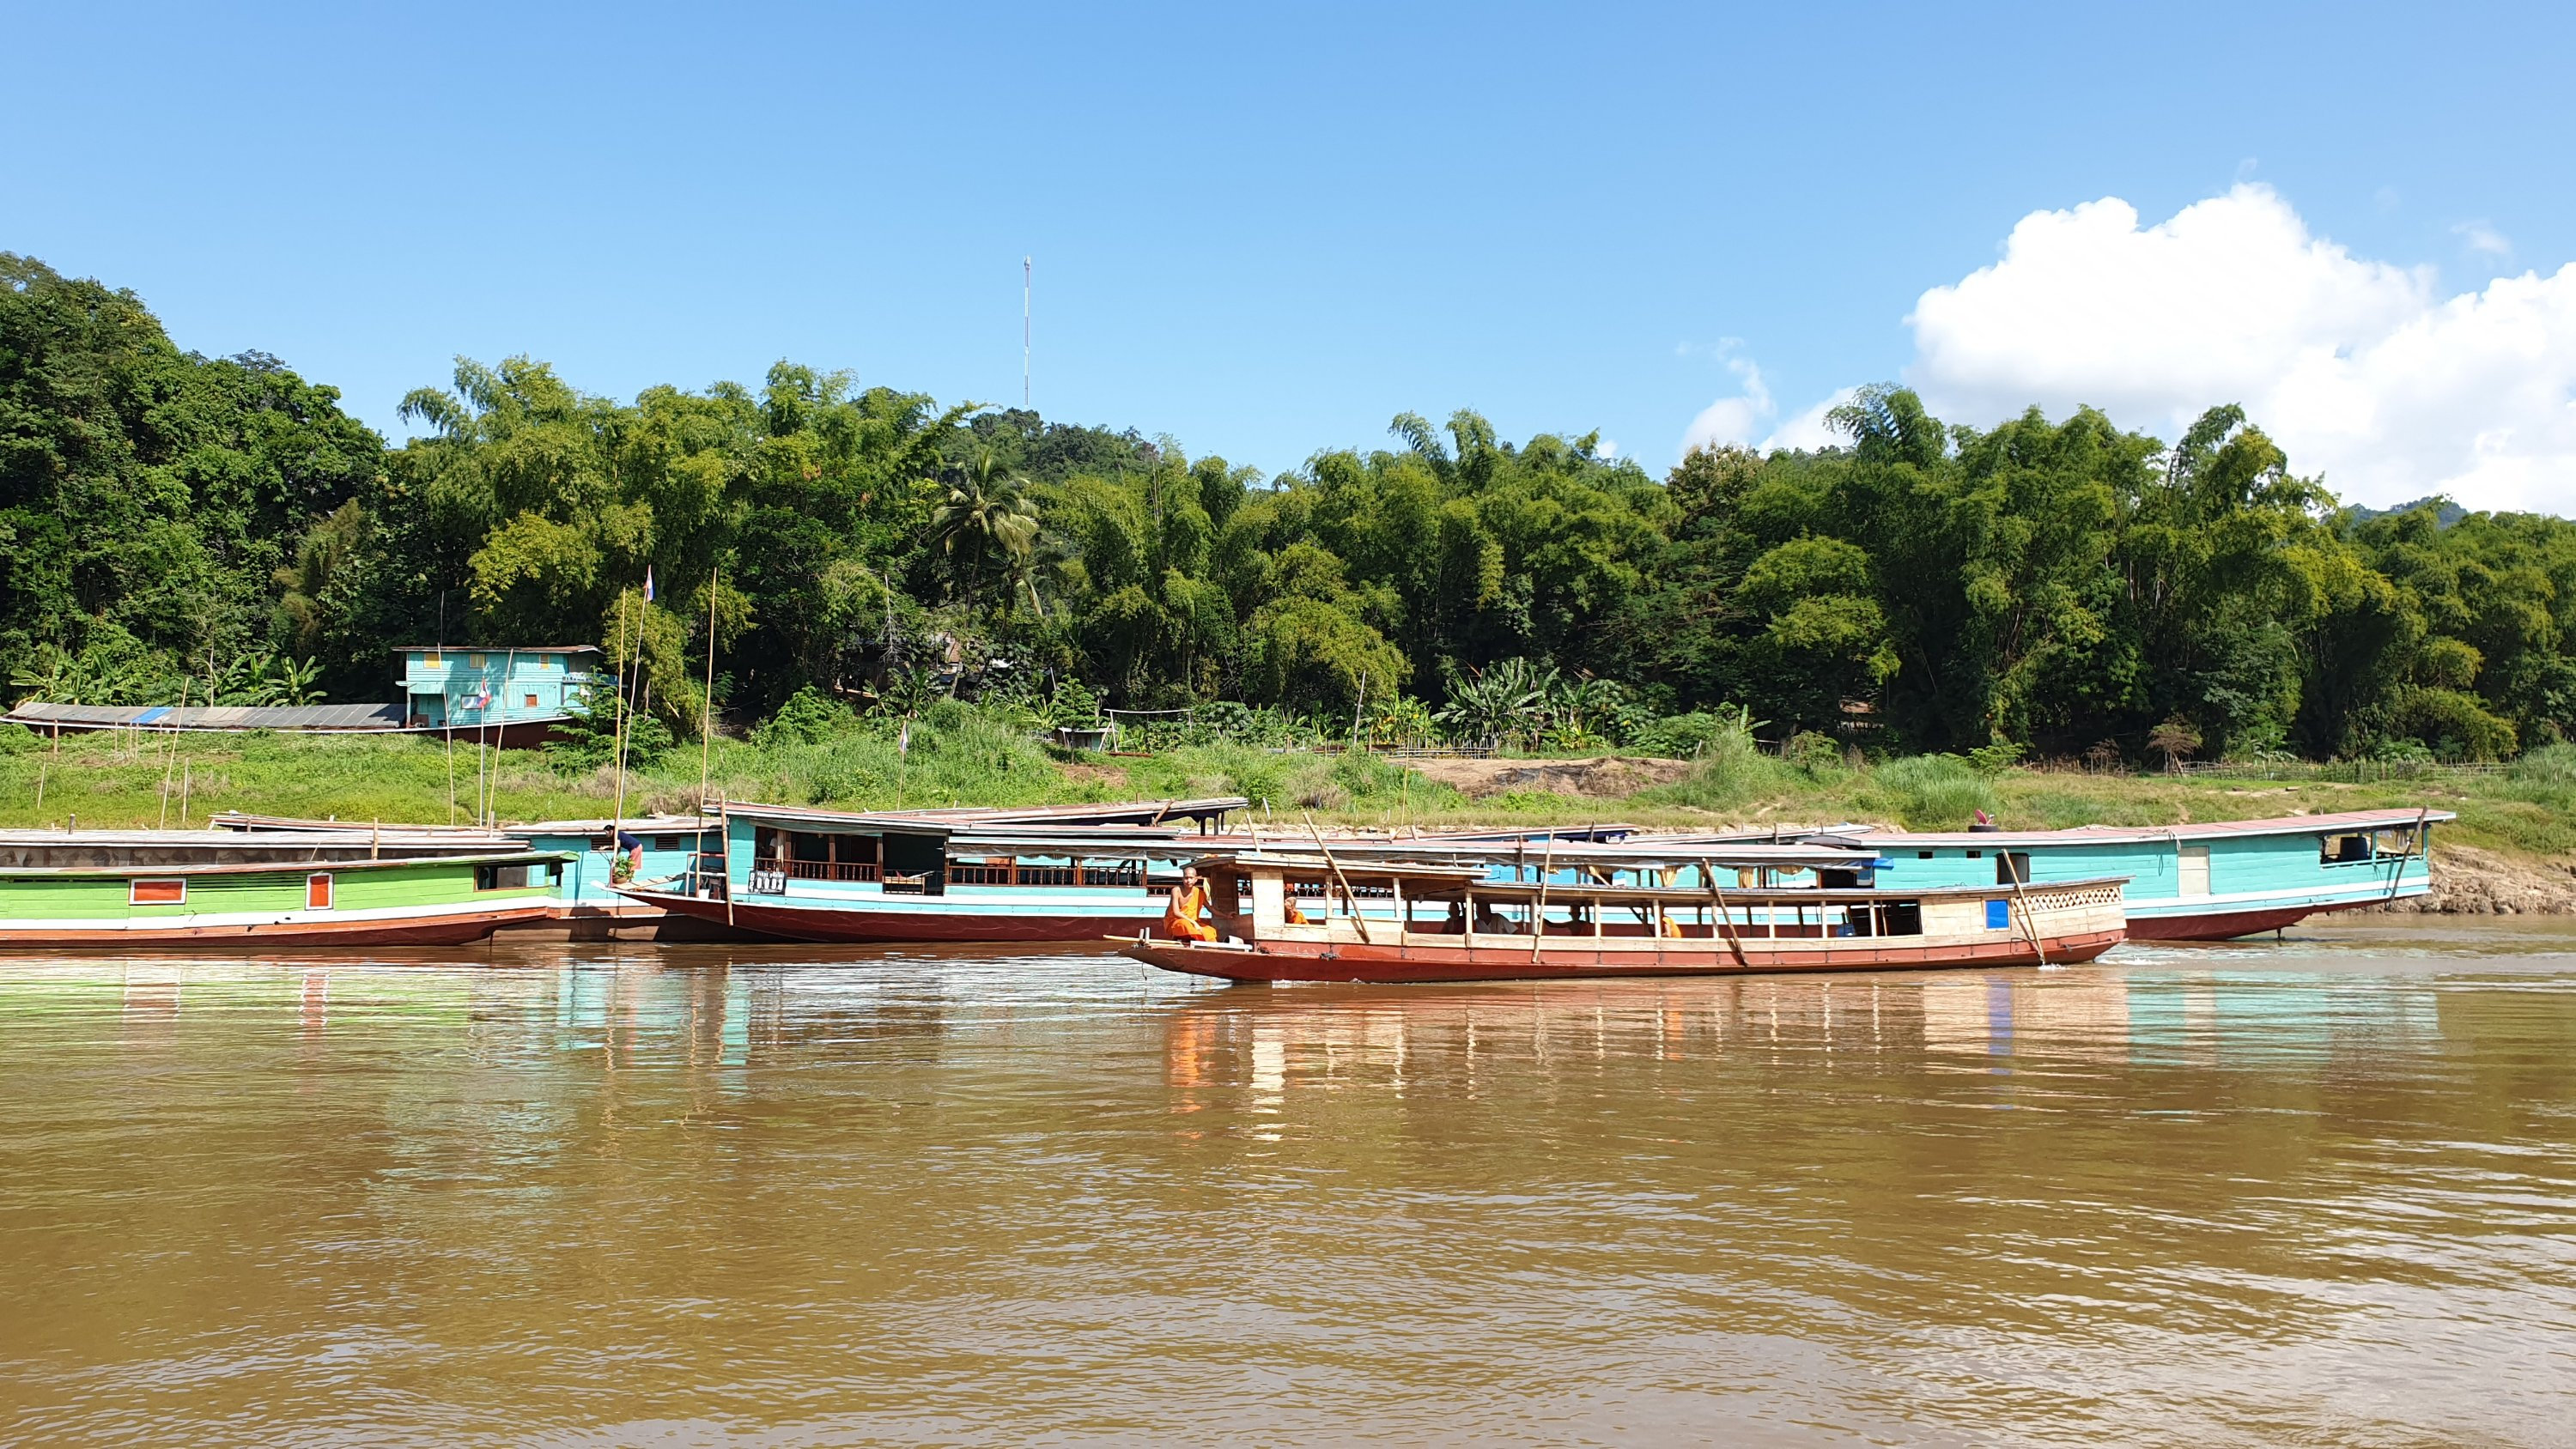 Slow boats on the Mekong River in Laos